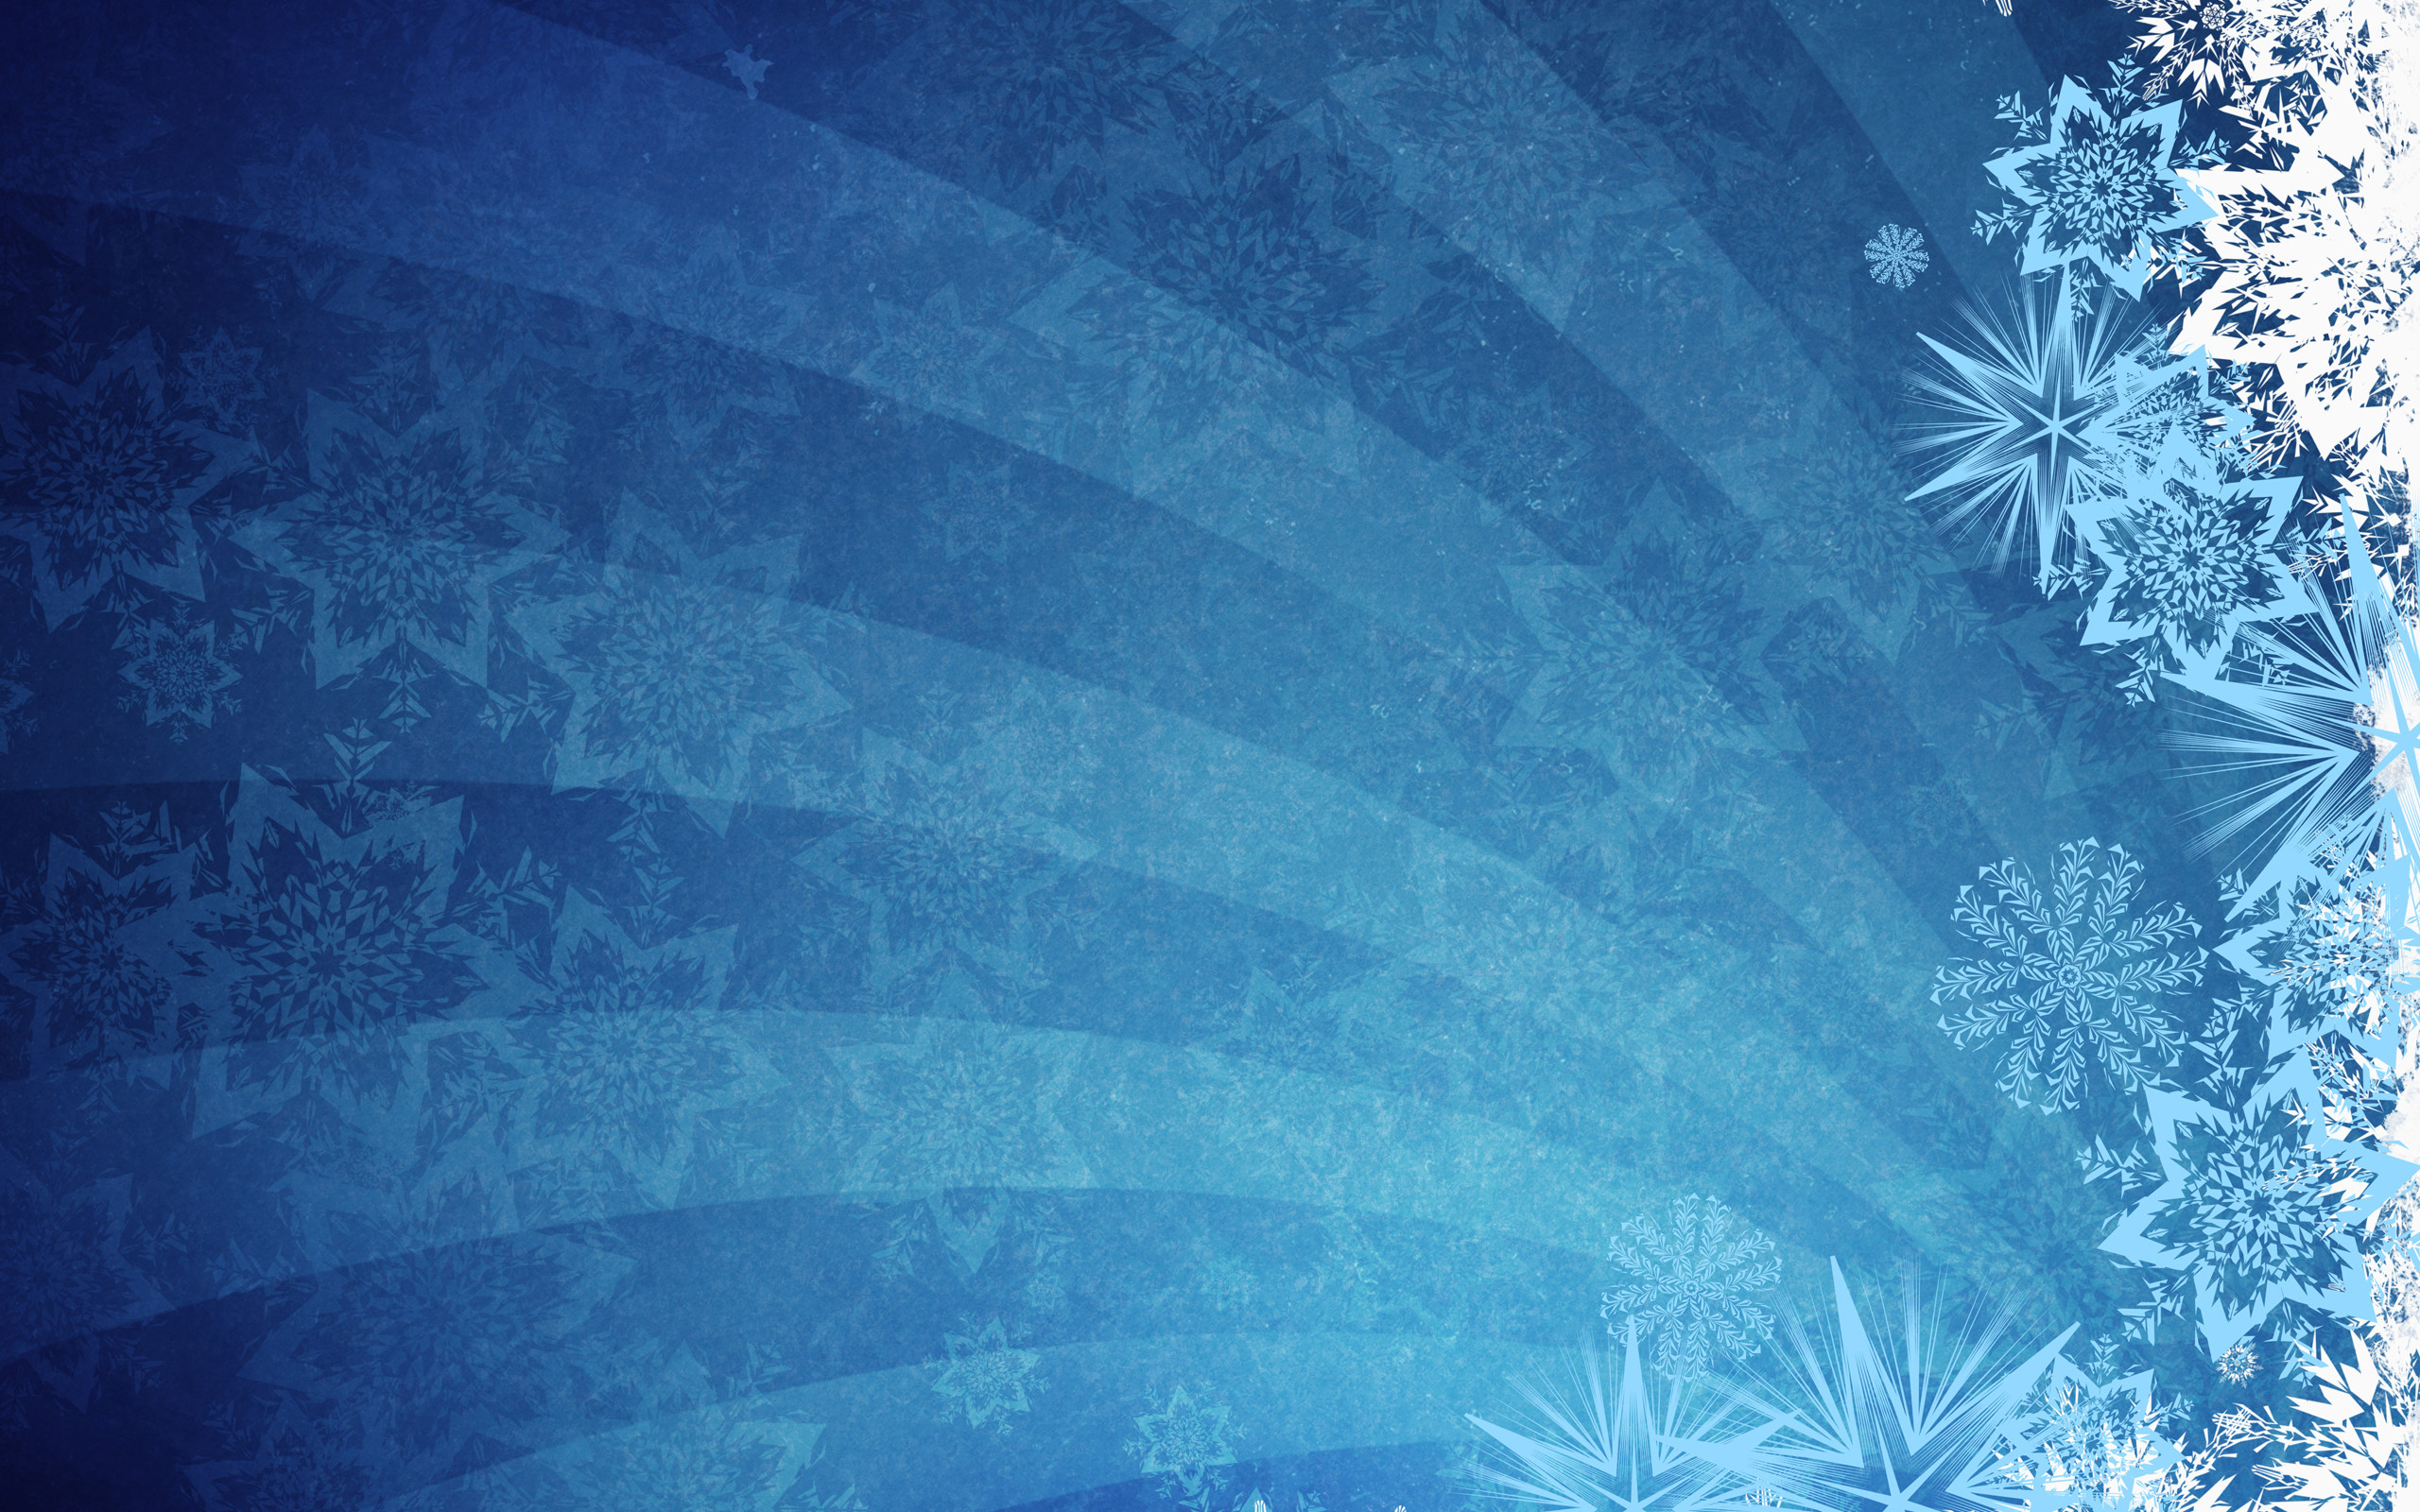 2560x1600 Blue Grunge Grunge Background Snowflakes Vectors #10192